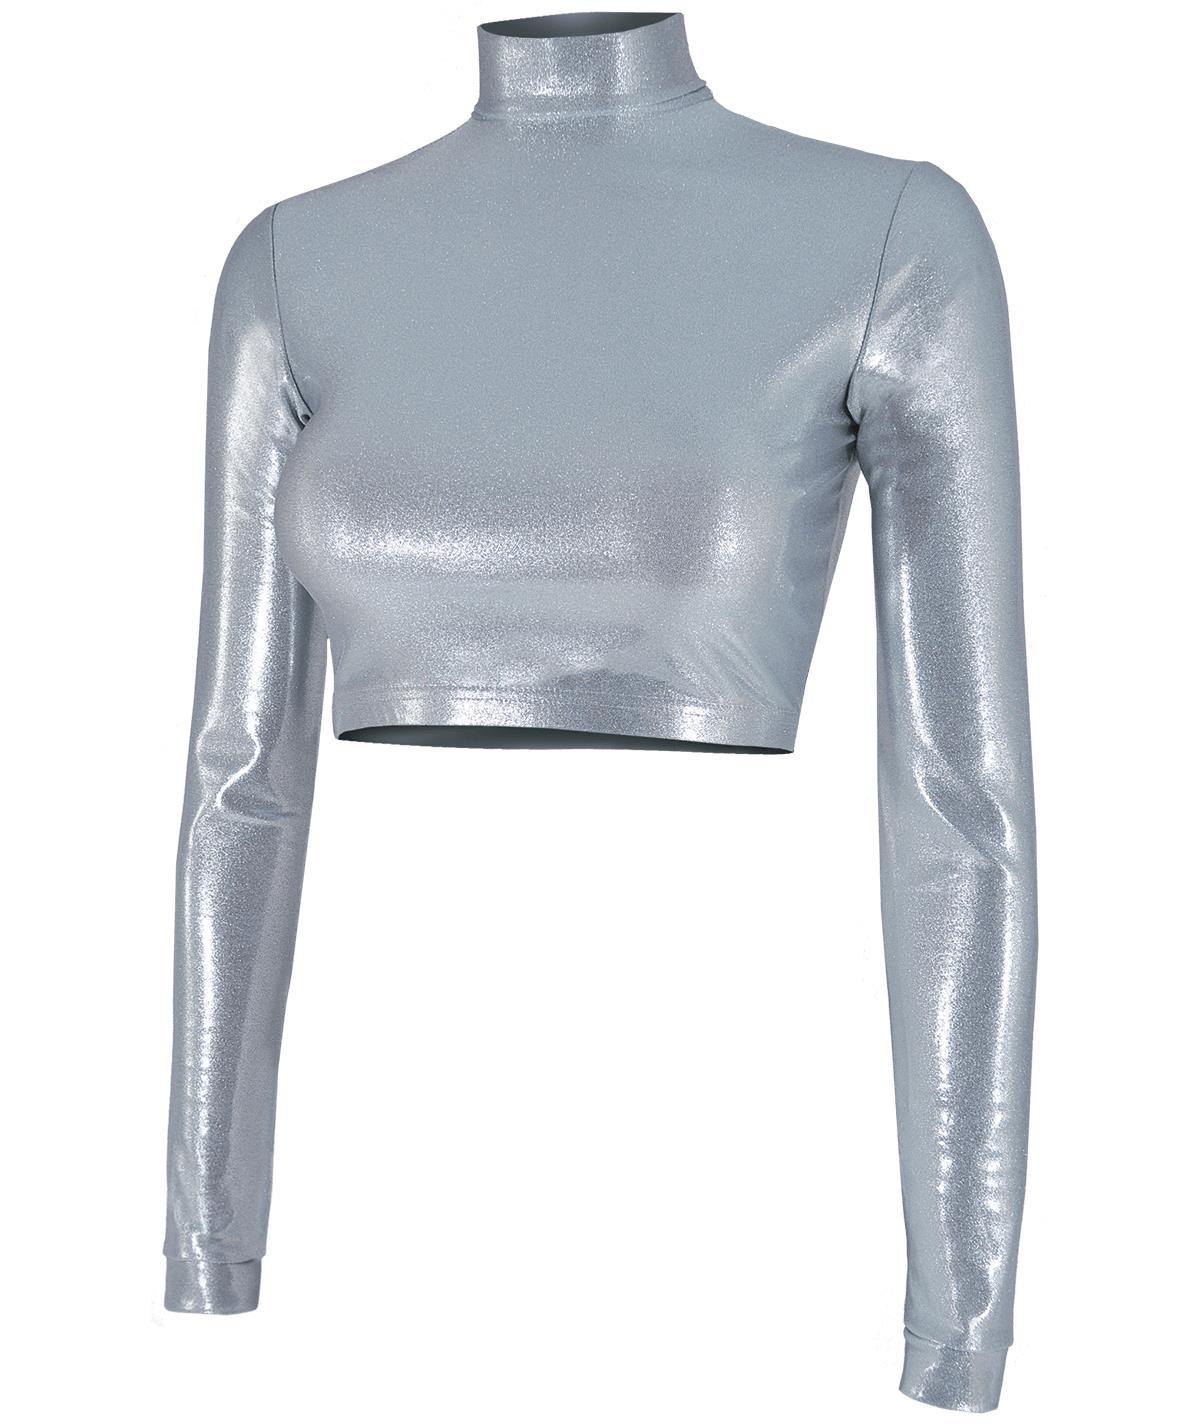 METALLIC MIDRIFF CROPPED BODYSUITS